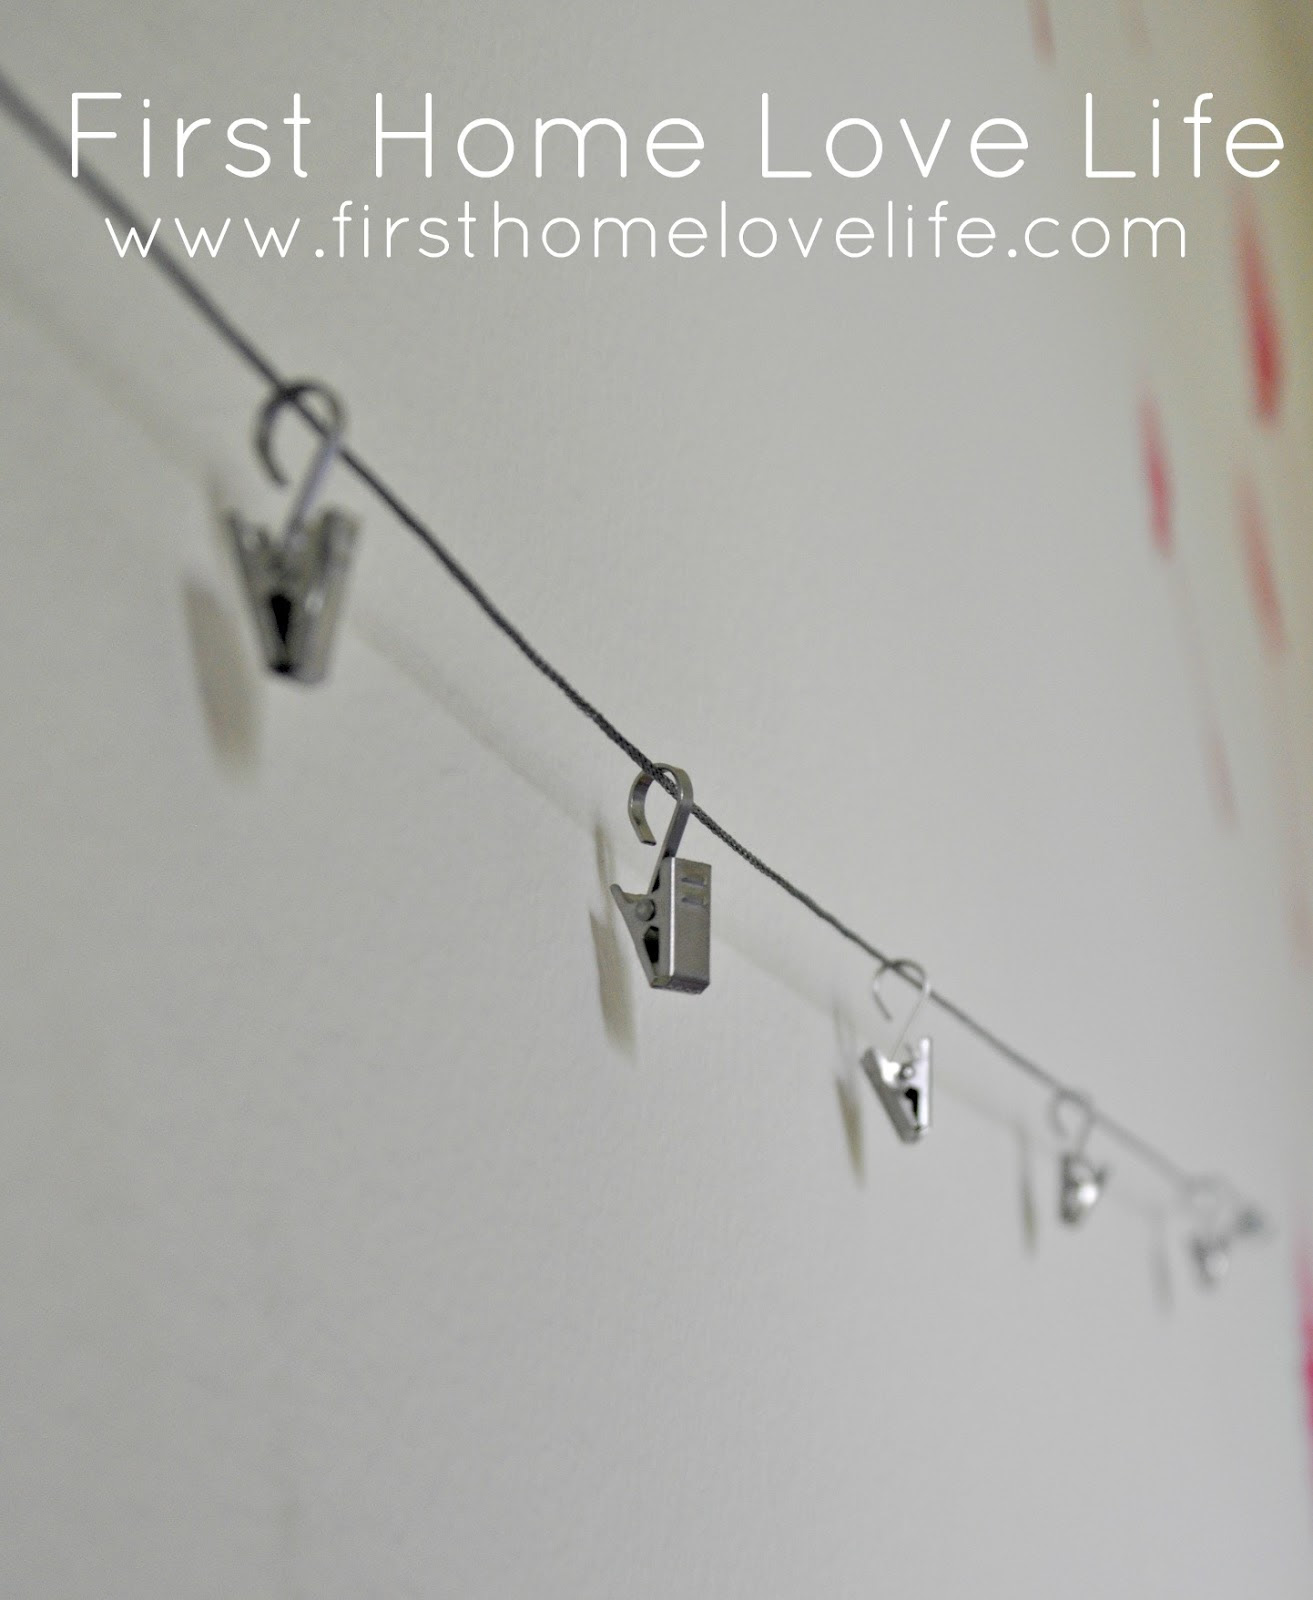 Wire And Clips For Hanging Artwork My Web Value